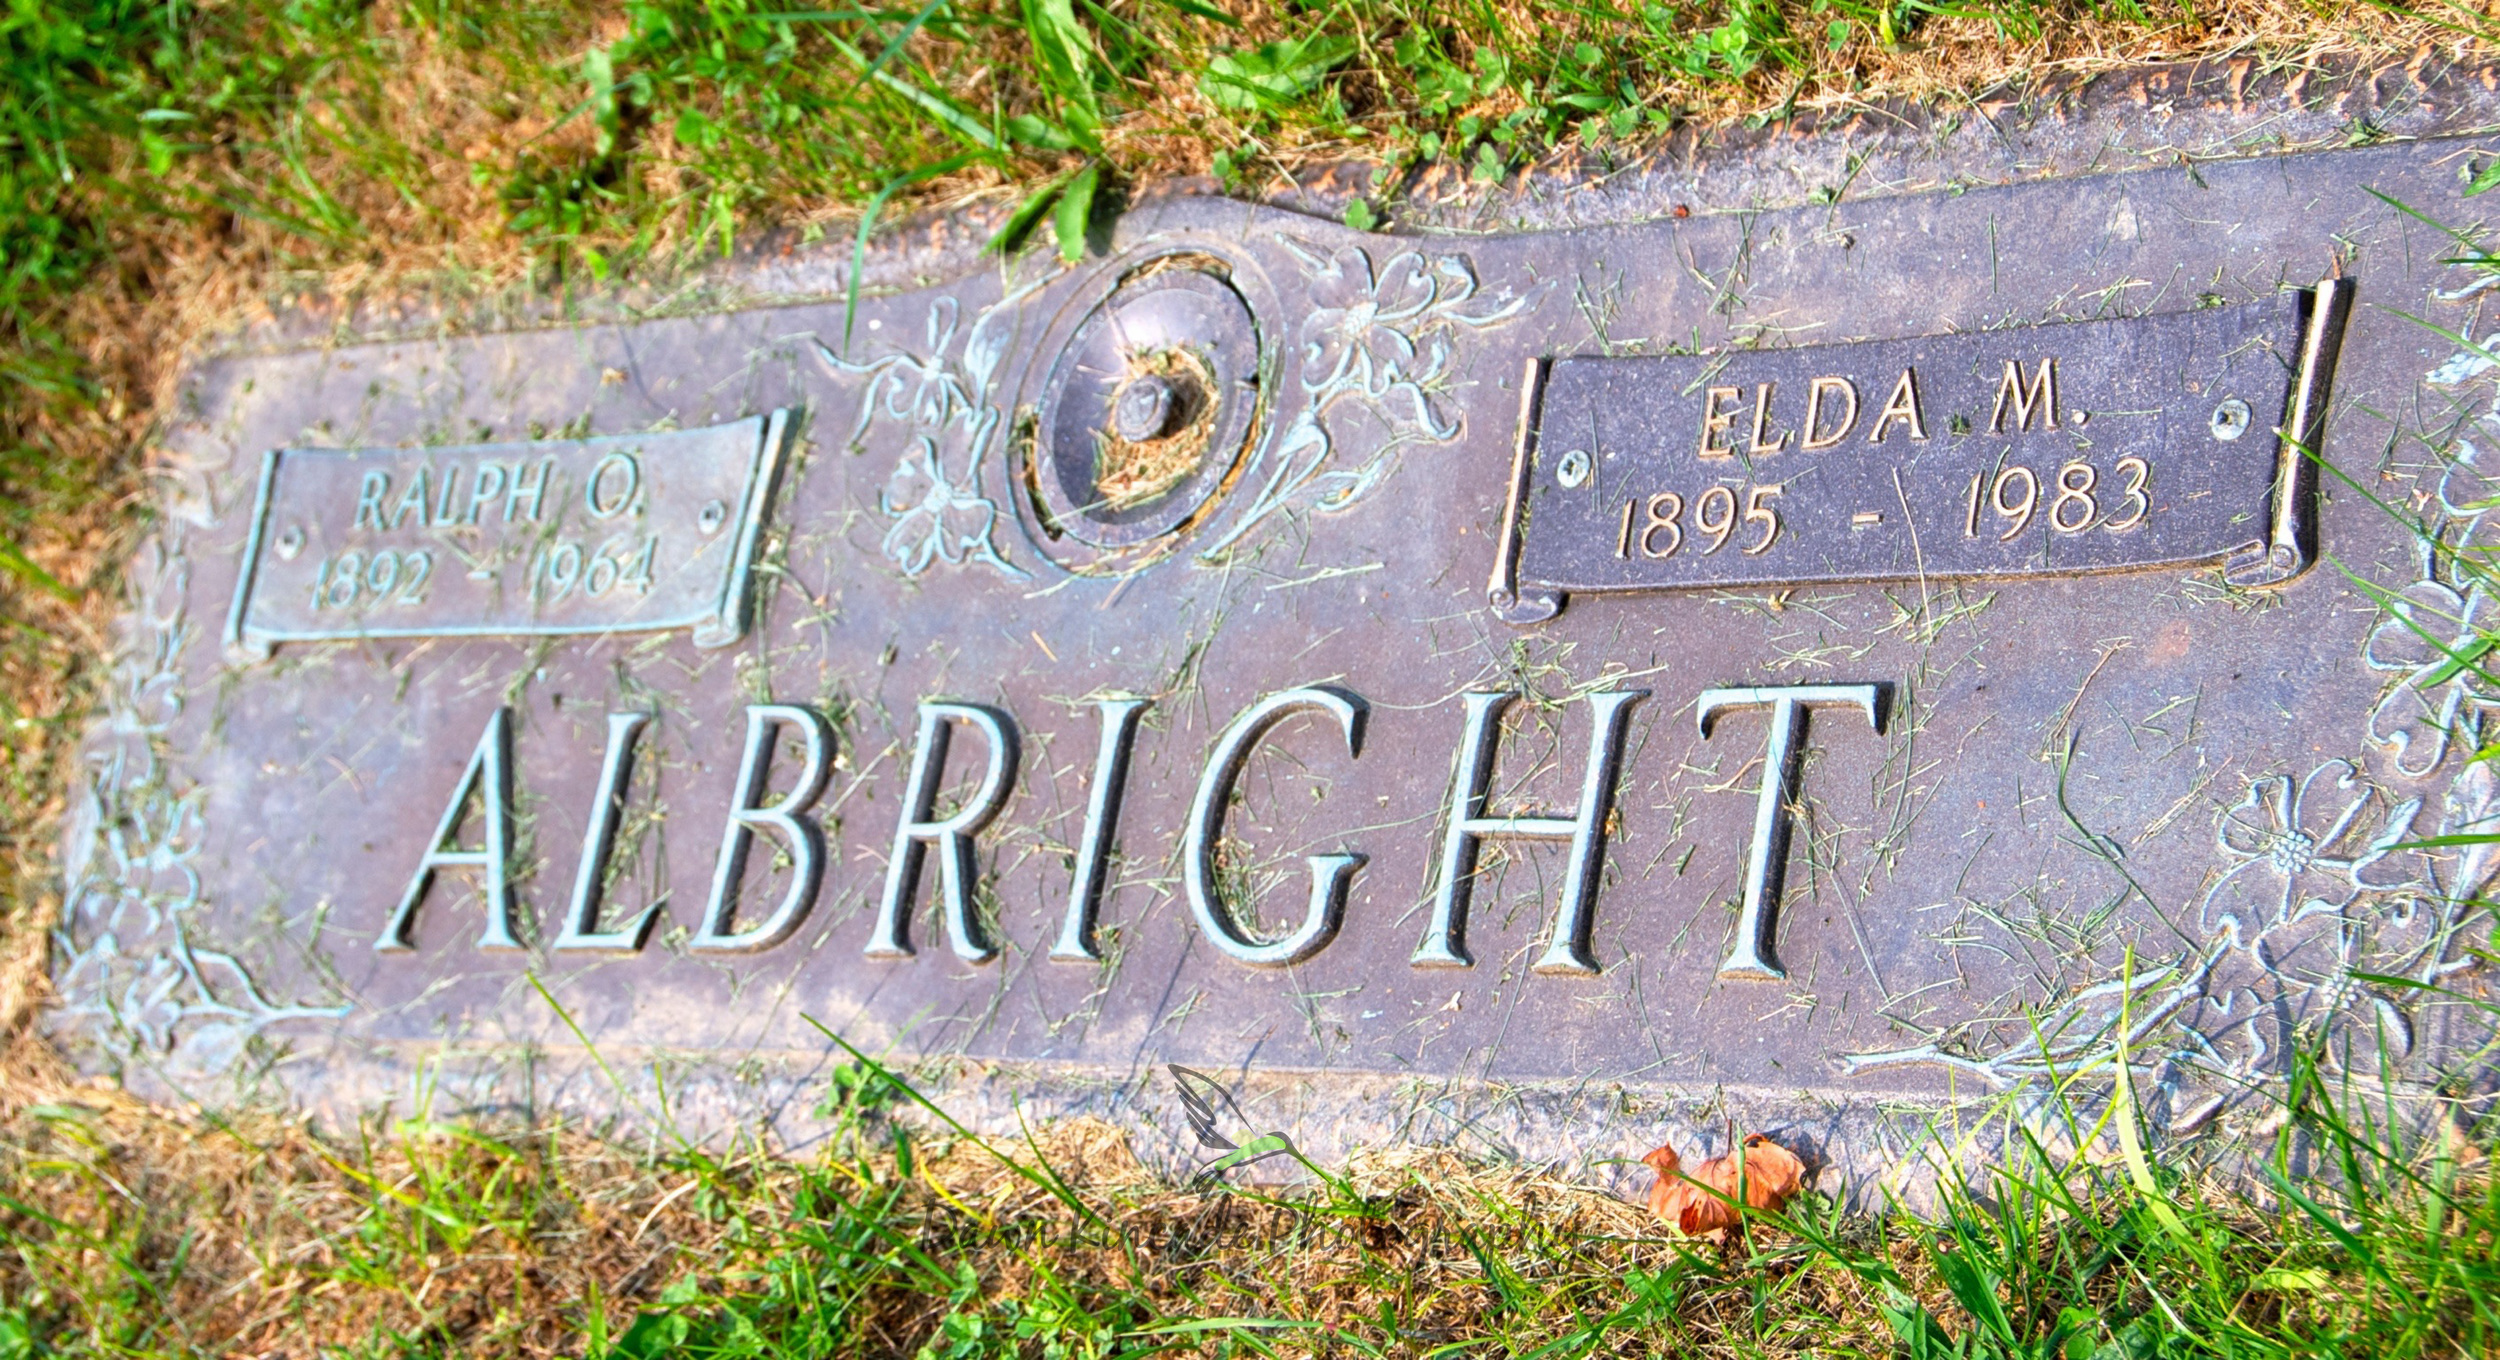 The grave marker of my maternal grandparents in Altoona, PA.